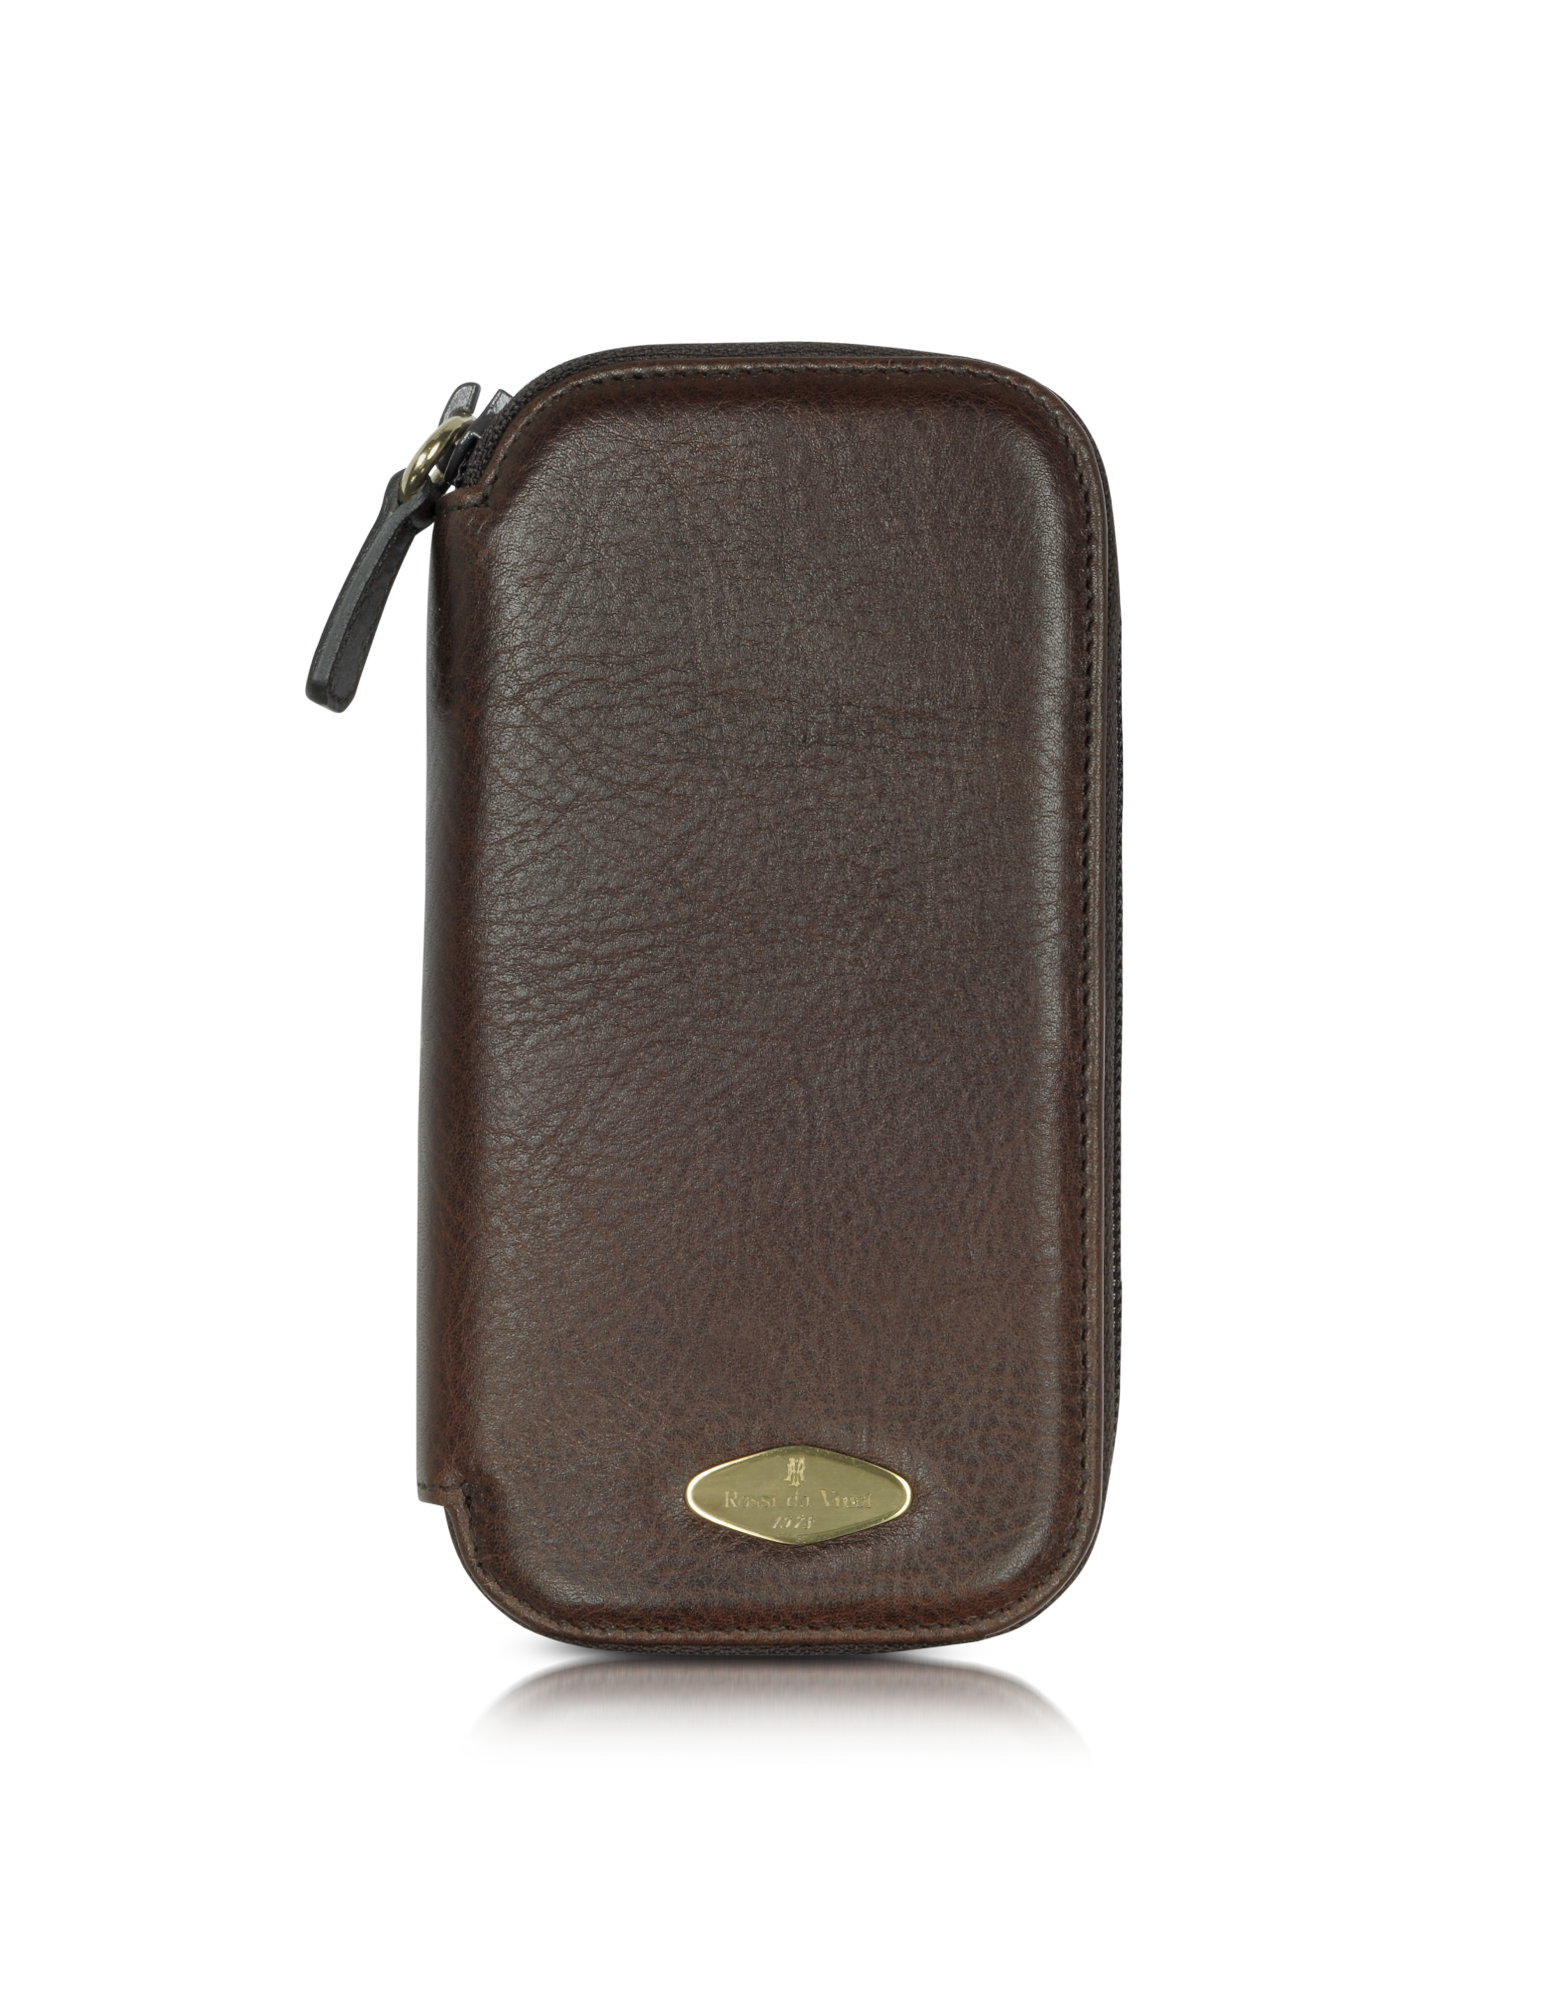 Image of Brown Leather Watch Box with Zipper